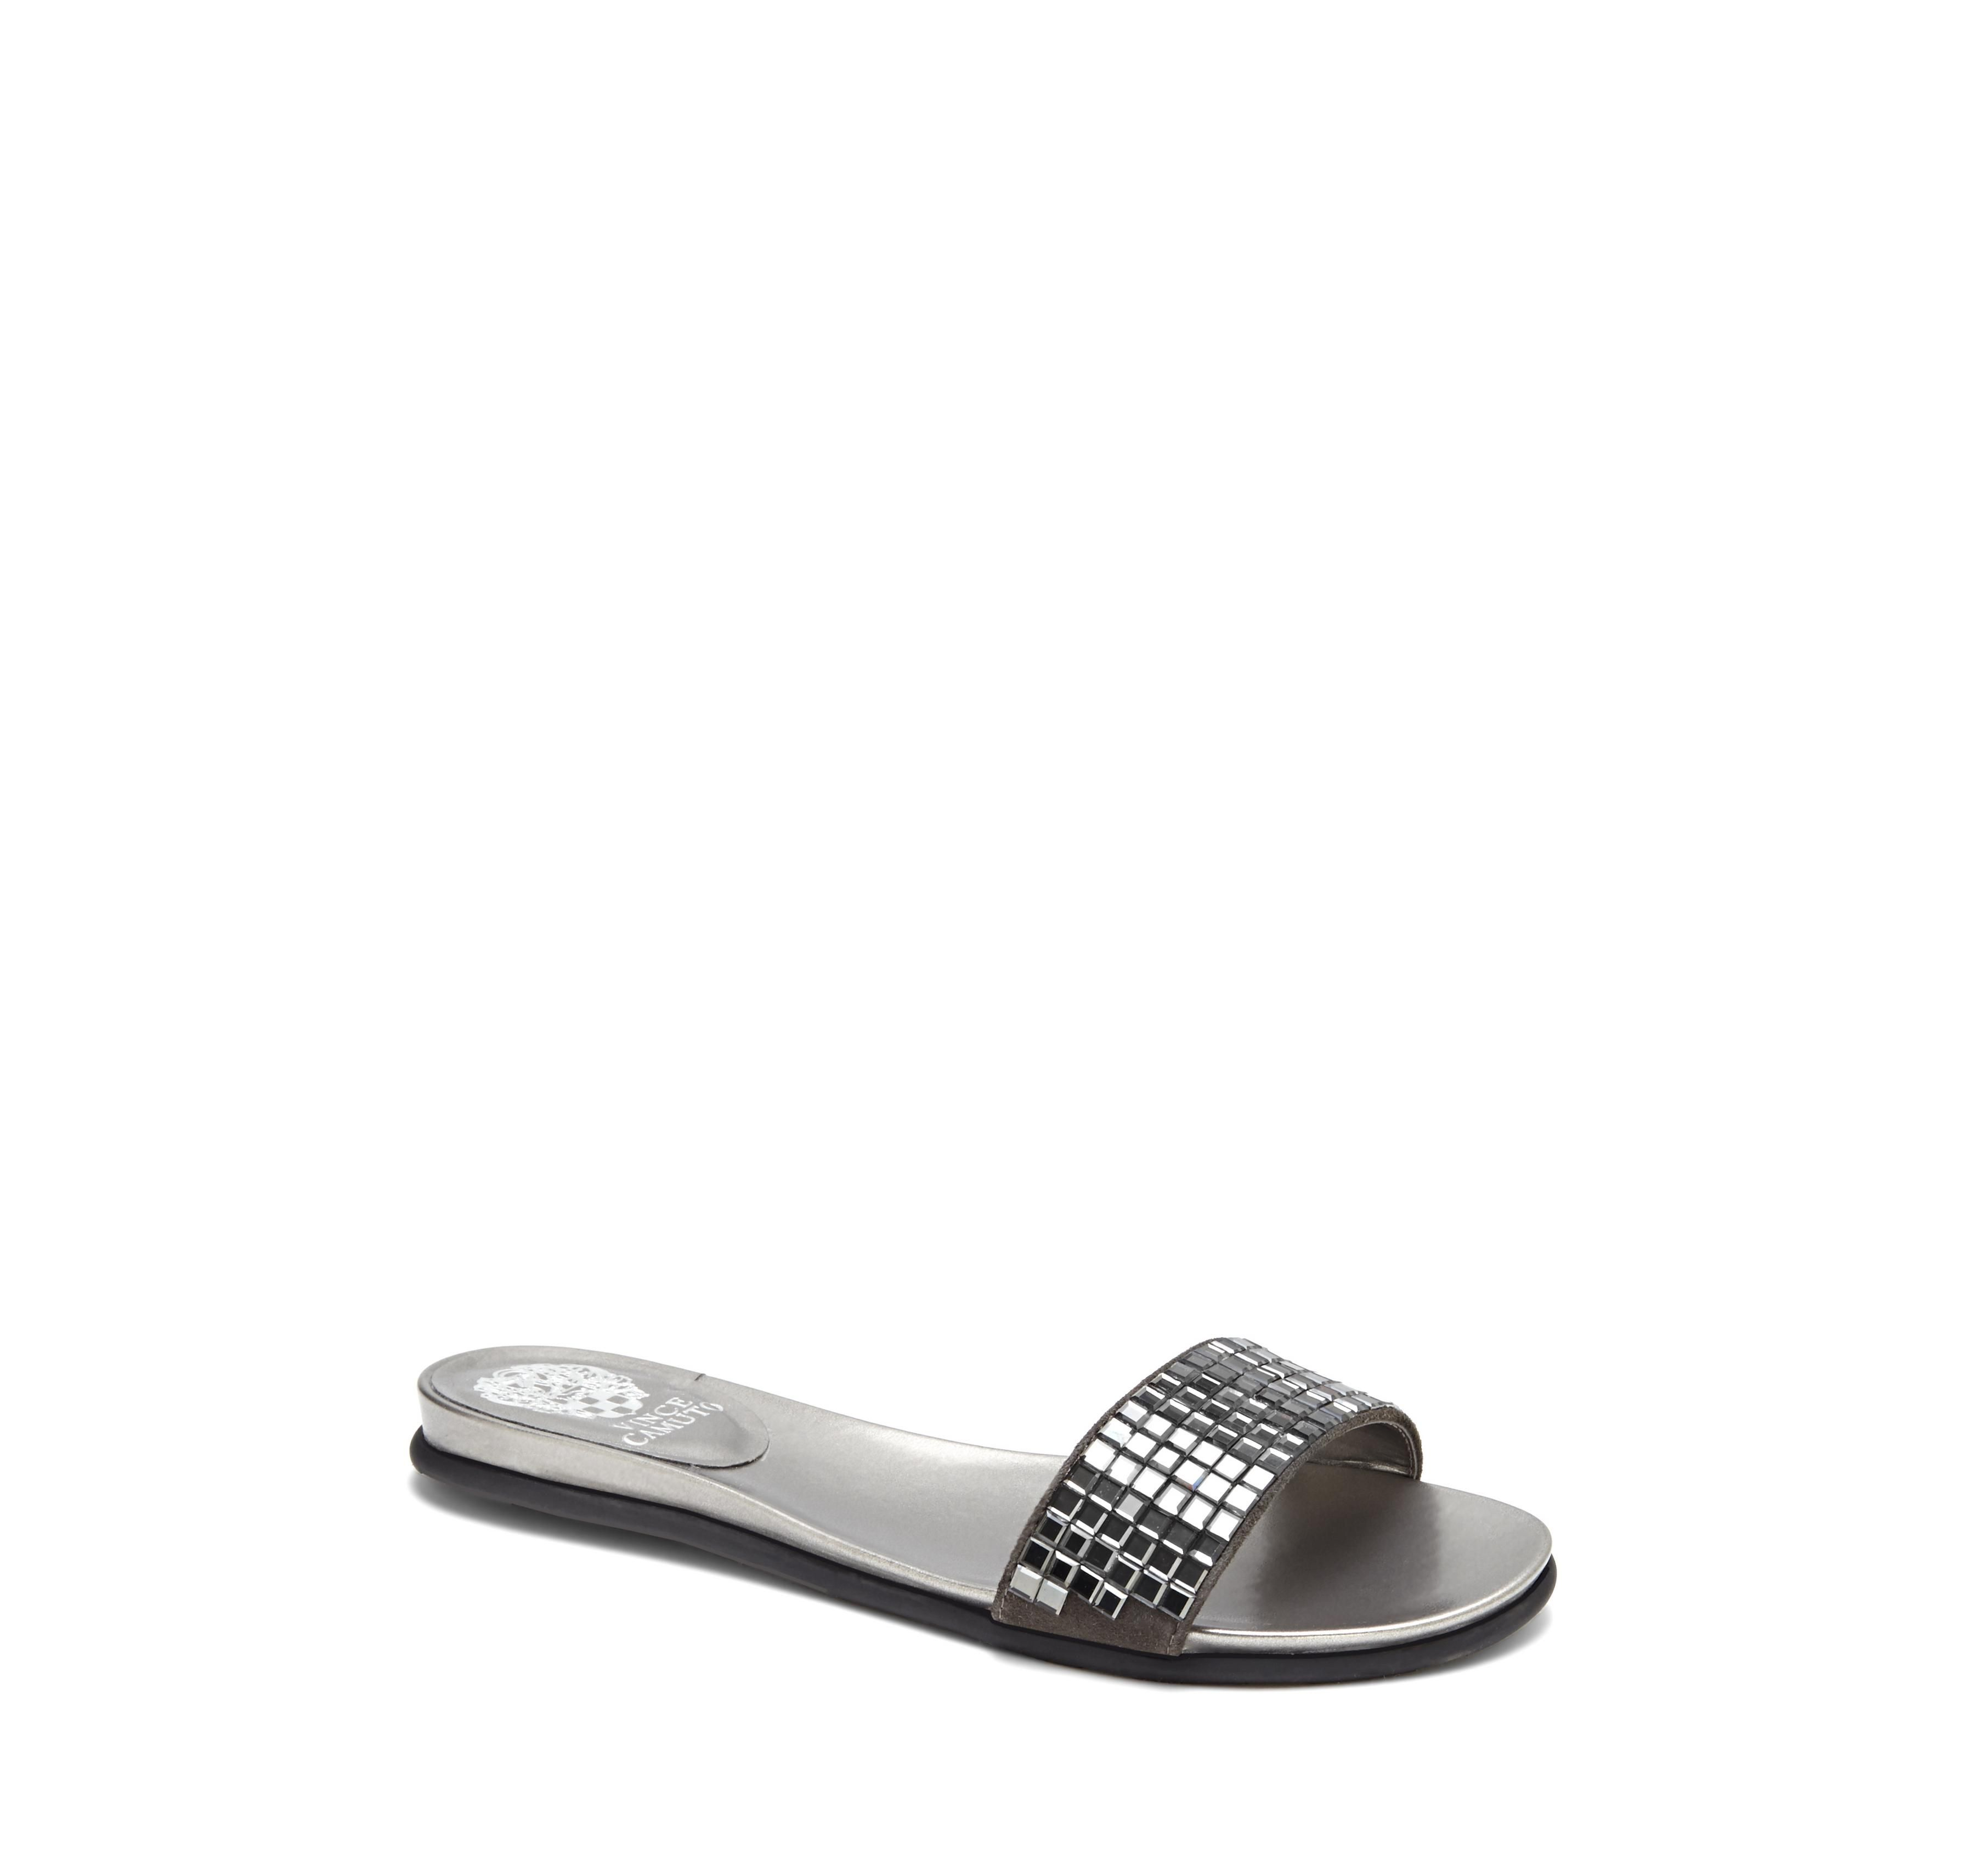 5a2cac03df0438 VINCE CAMUTO EVANAL- SQUARE RHINESTONE STRAP SANDAL - Vince Camuto ...